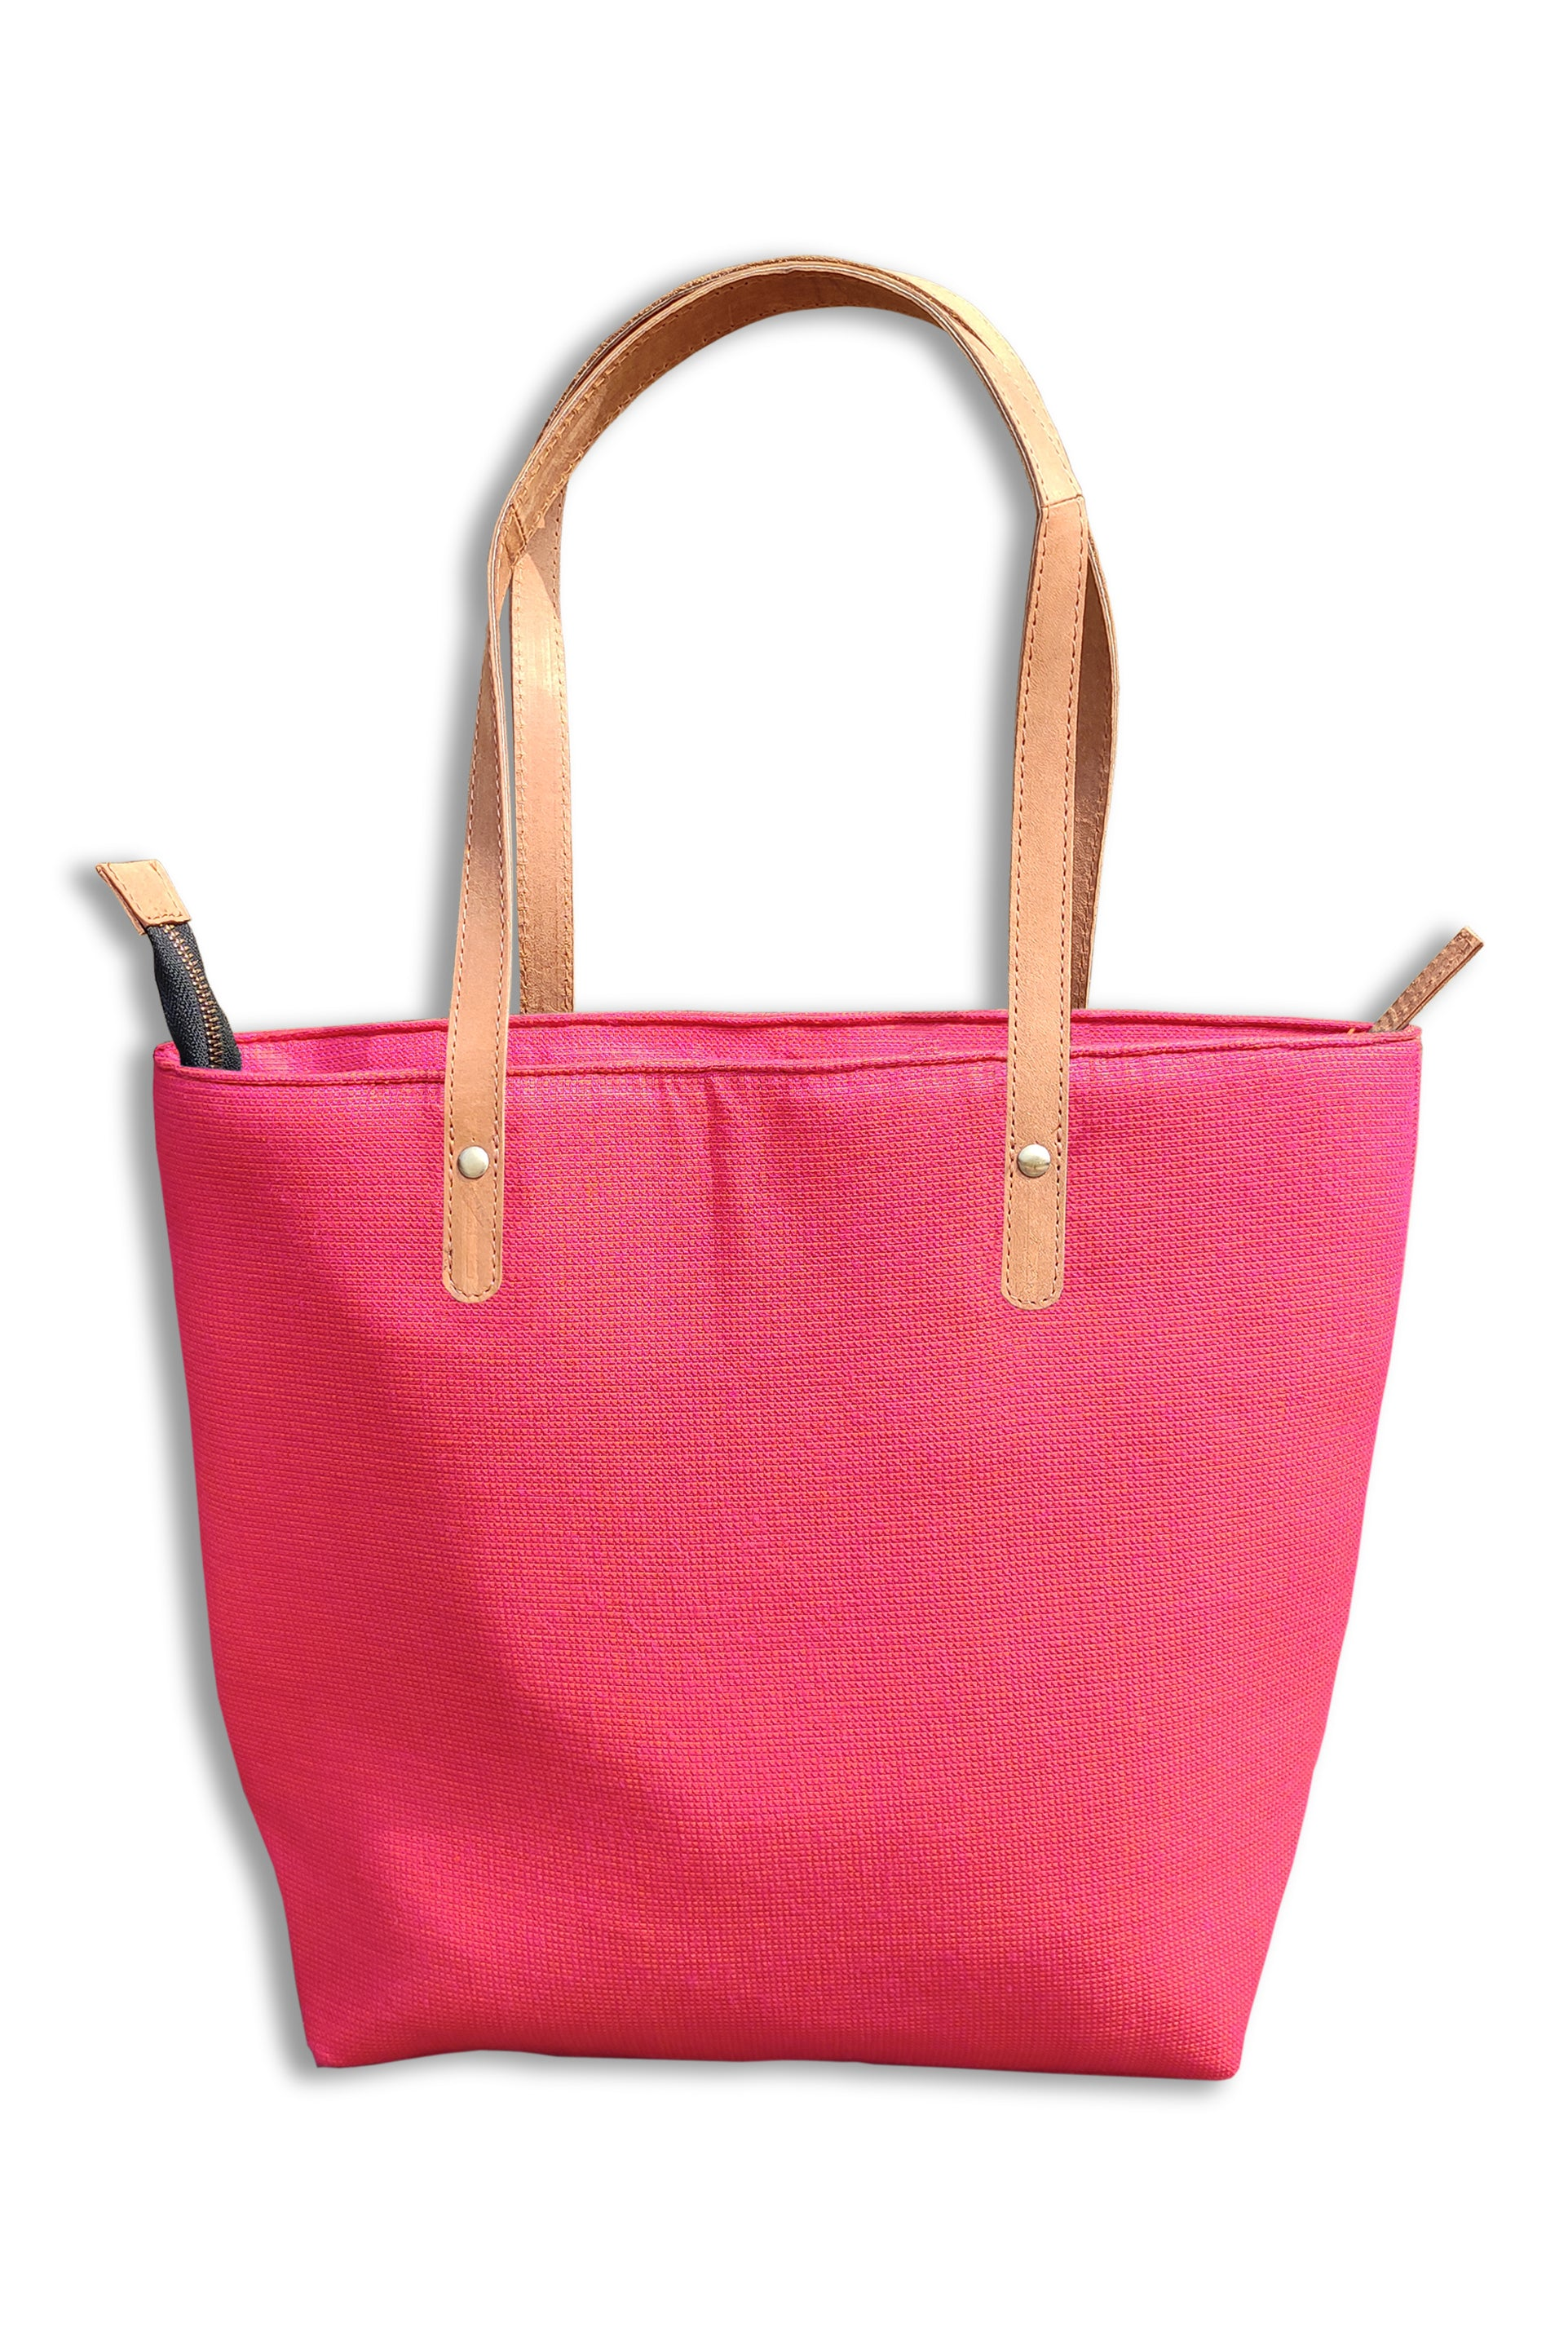 Cotton Pink Tote Bag with Leather Handle